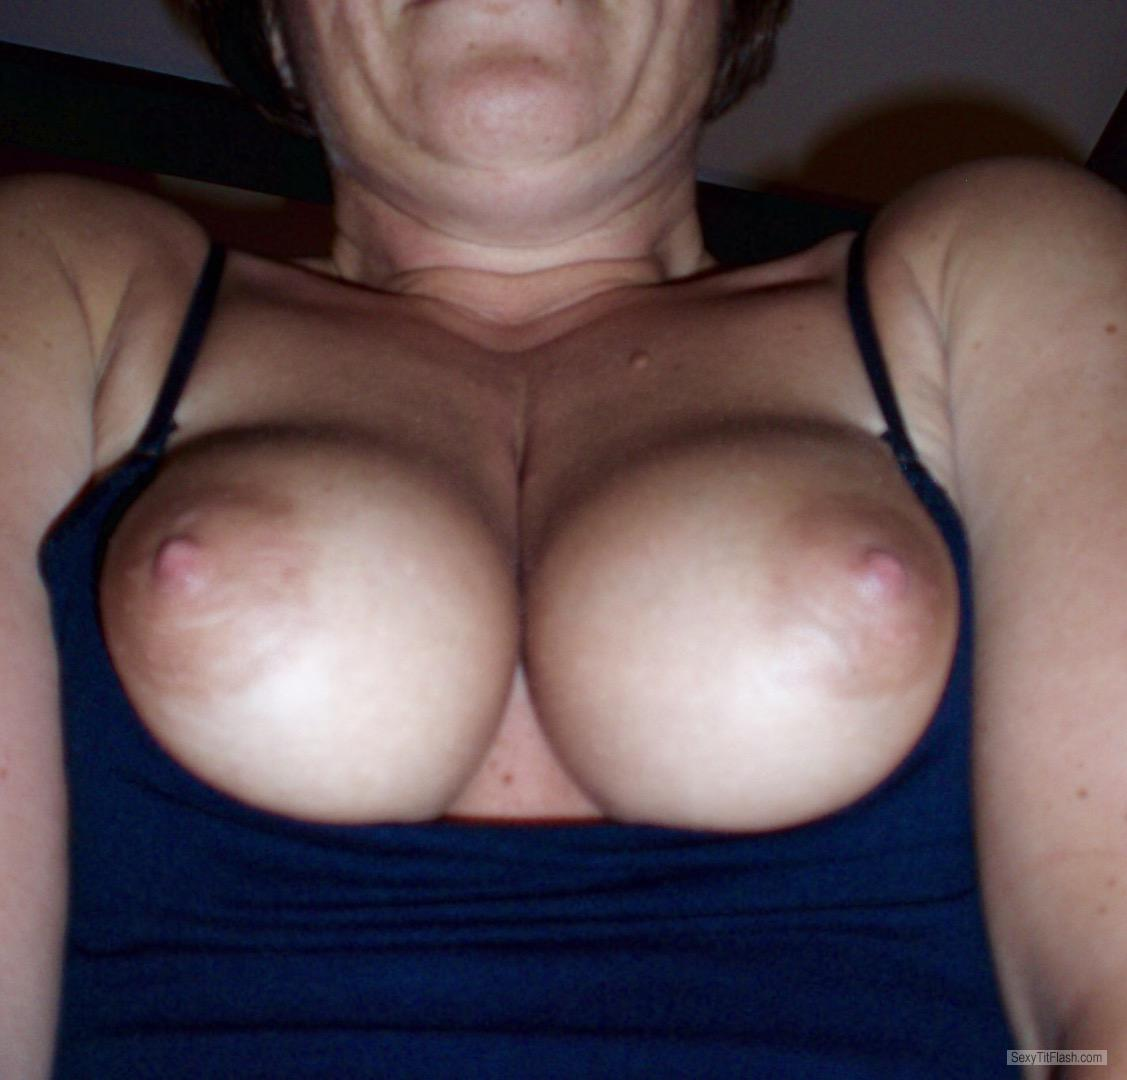 Tit Flash: My Medium Tits - Pjp0rn from United Kingdom